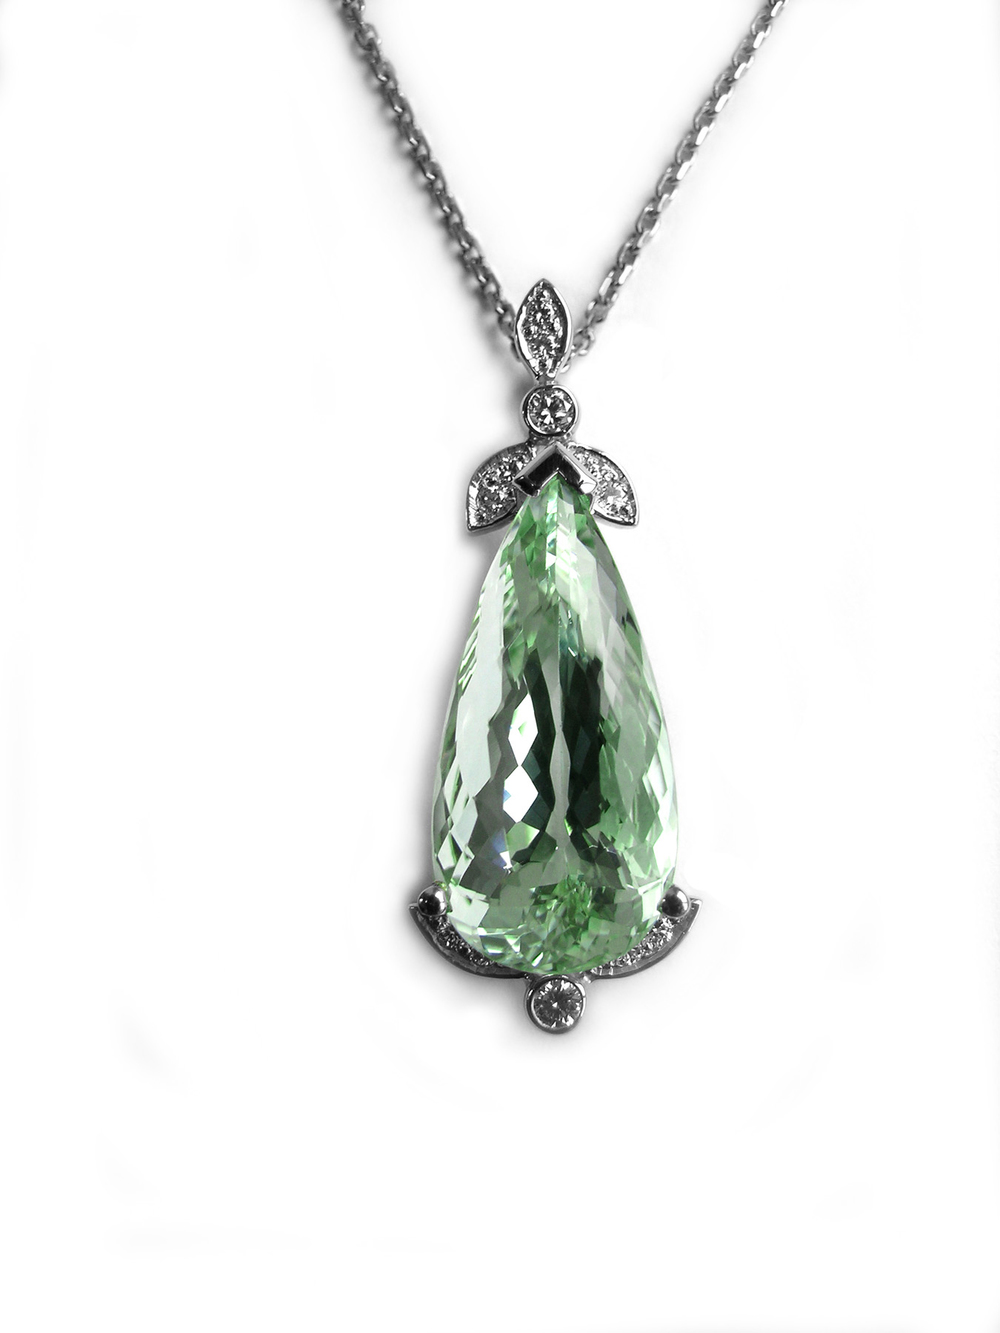 Green Beryl and Diamonds